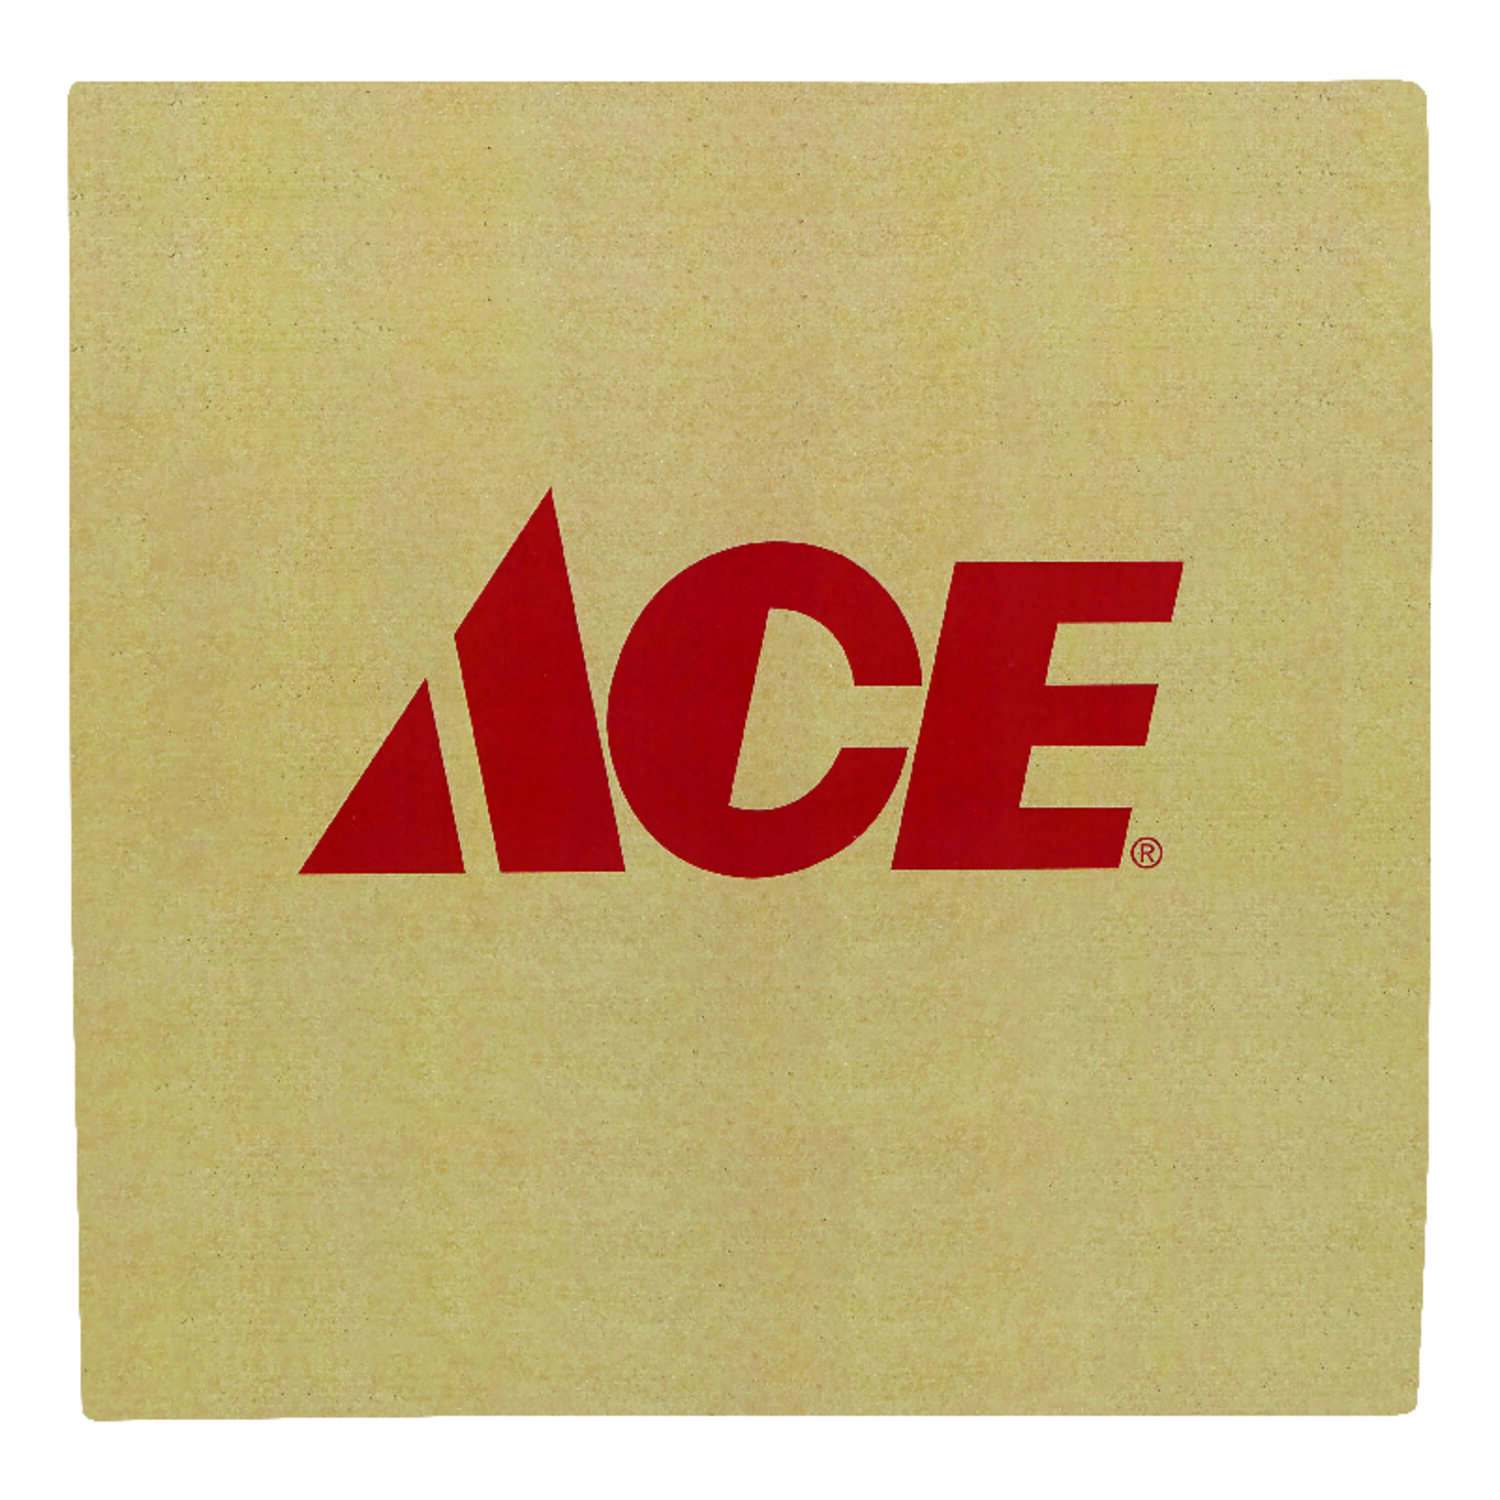 Ace  15 in. H x 16 in. W x 16 in. L Cardboard  Corrgugated Box  1 pk